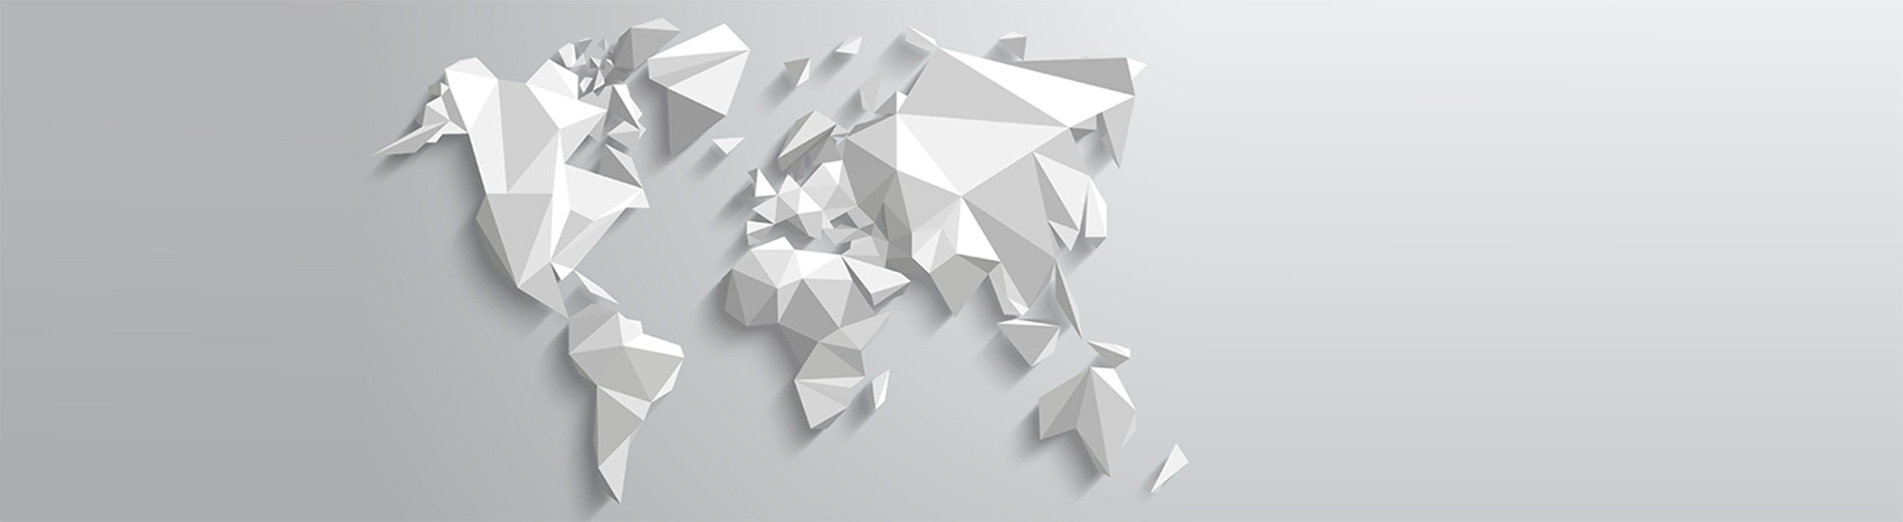 paper-continents-slider